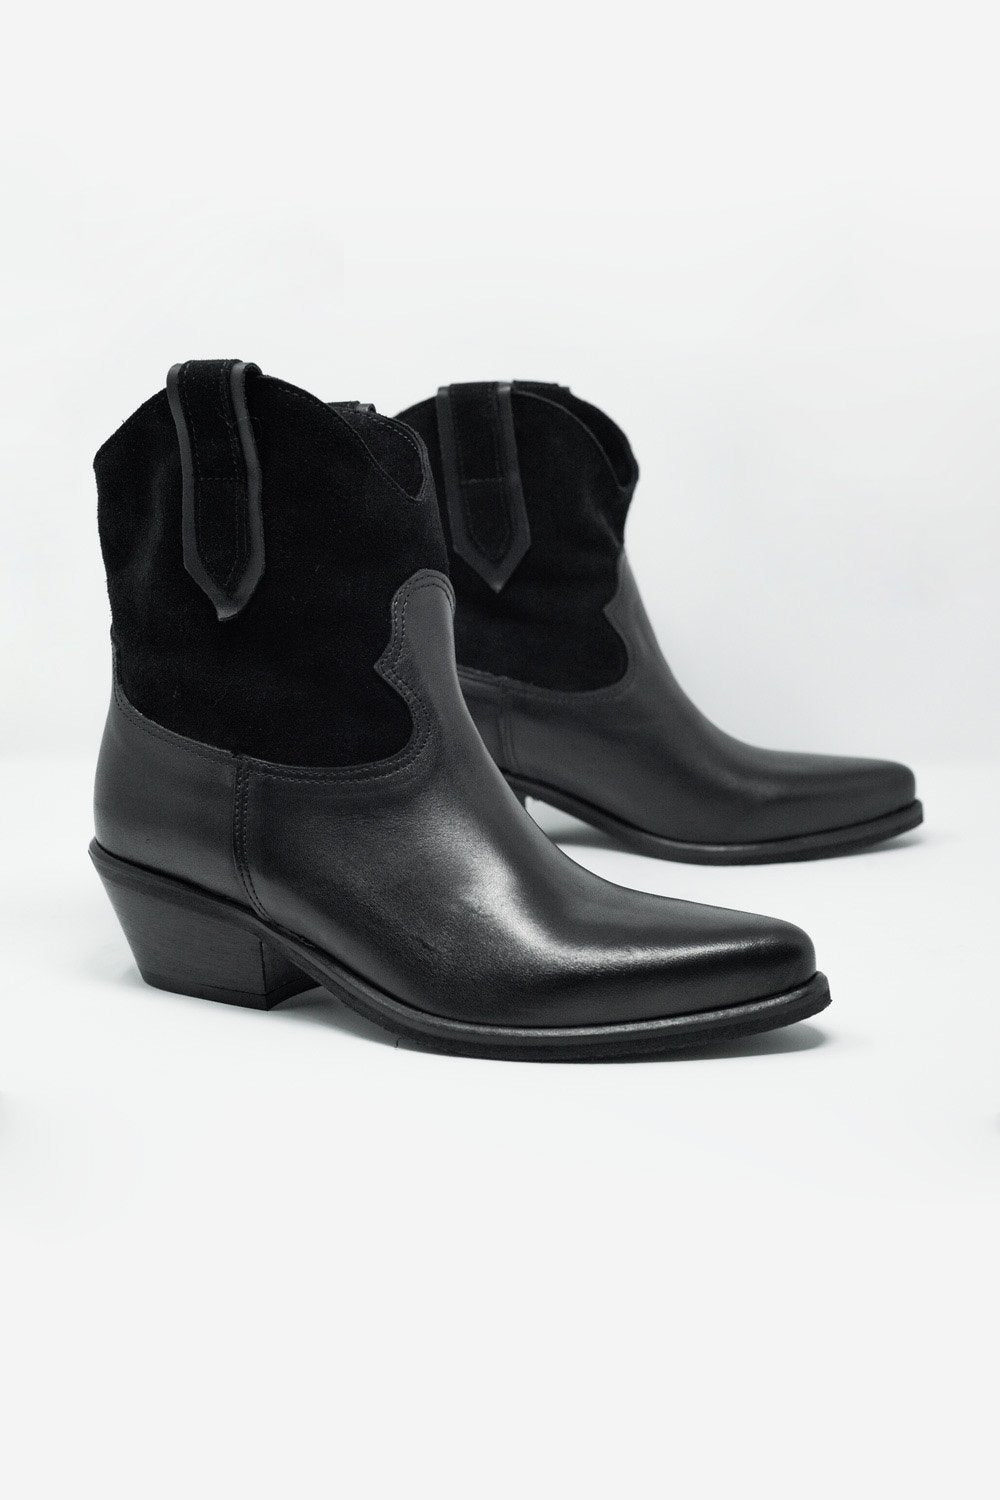 Q2 Black Western Sock Boots With Suede Detail